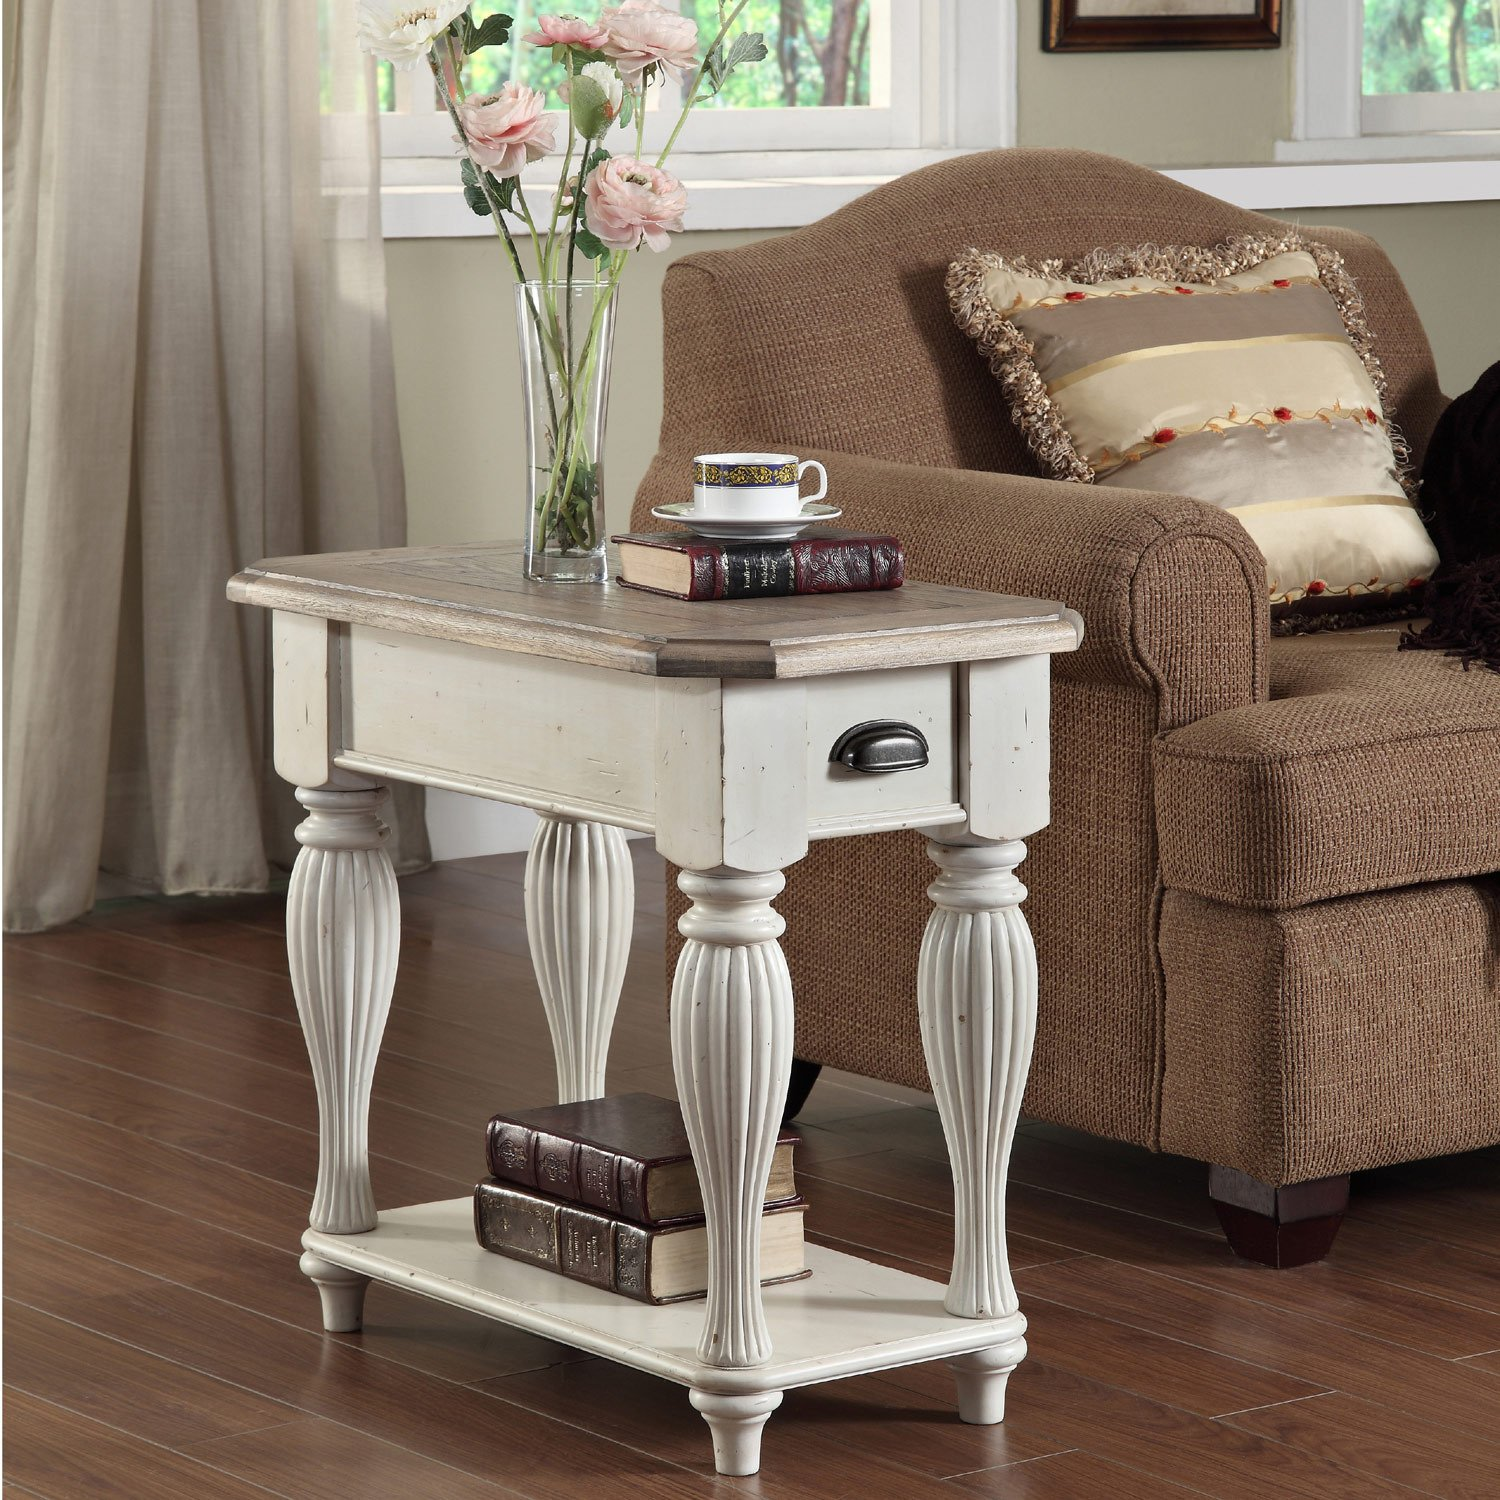 Amazon.com: Coventry Two Tone 15.5 In. Chairside Table: Kitchen U0026 Dining